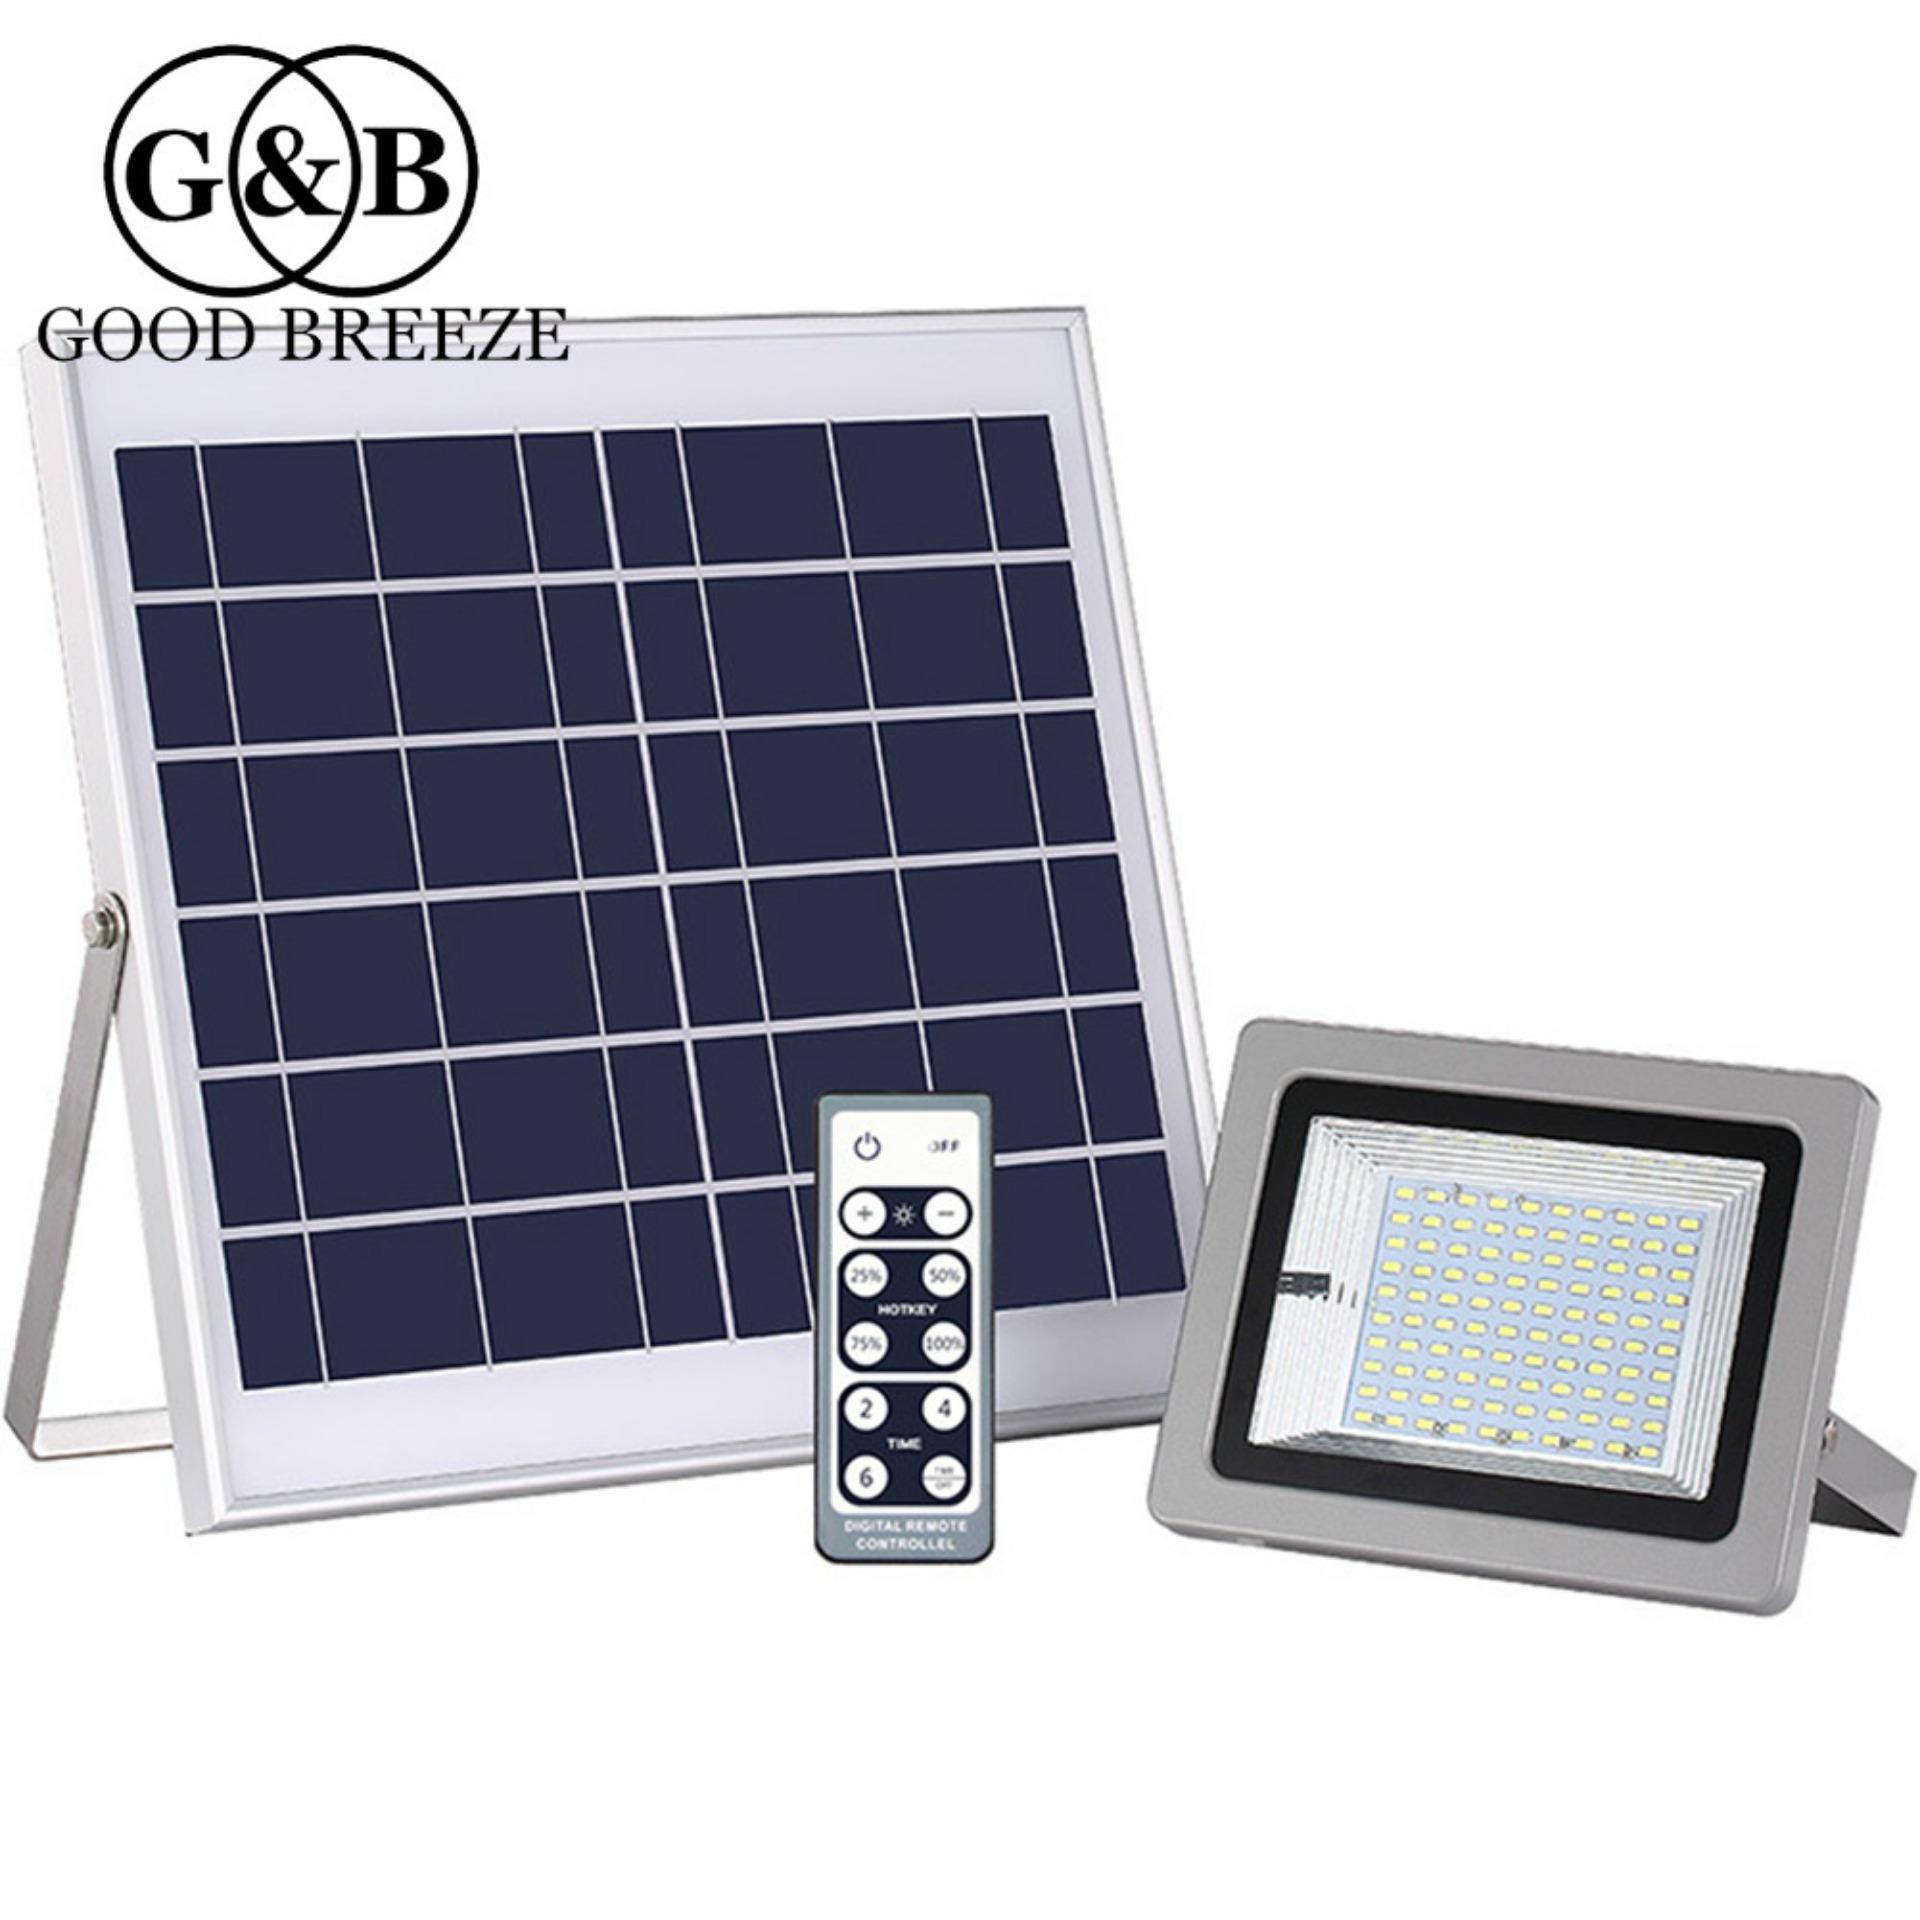 G&B Good Breeze Solar Flood Light, LED Solar Lights Auto-induction Outdoor Security Floodlight Waterproof IP65 for Patio Yard Garden Shed House Garage Court Billboard Pool